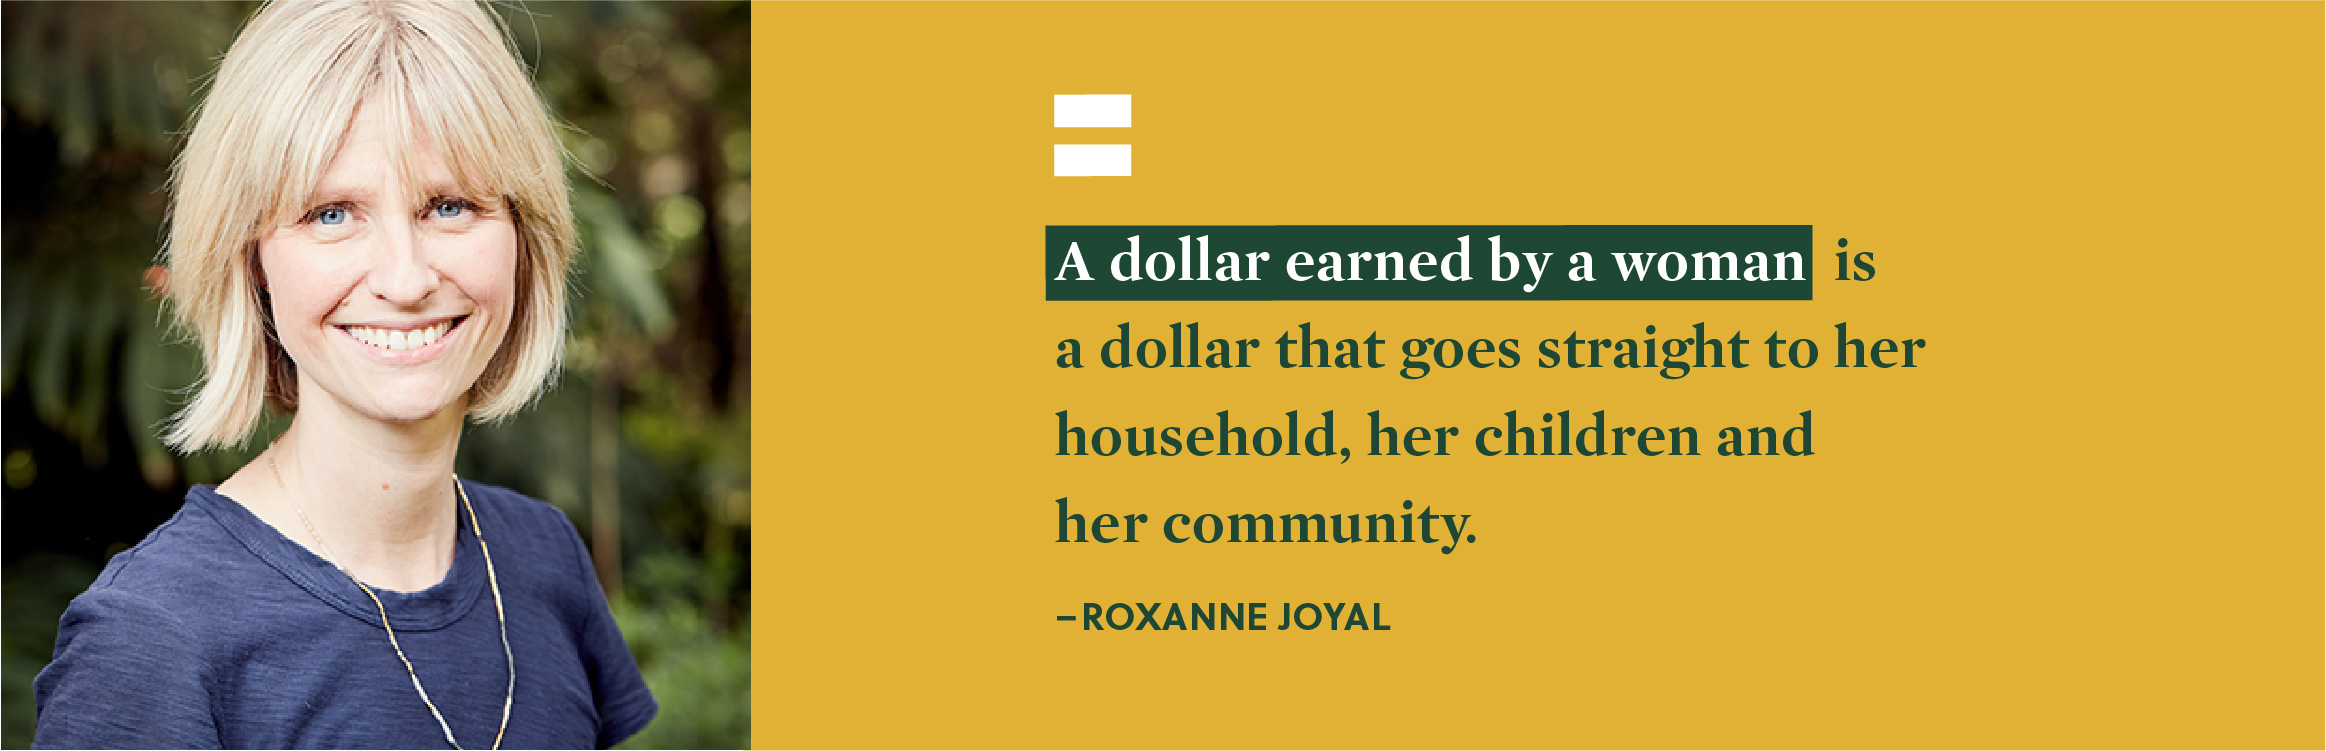 """A dollar earned by a woman is a dollar that goes straight to her household, her children and her community."" - Roxanne Joyal."